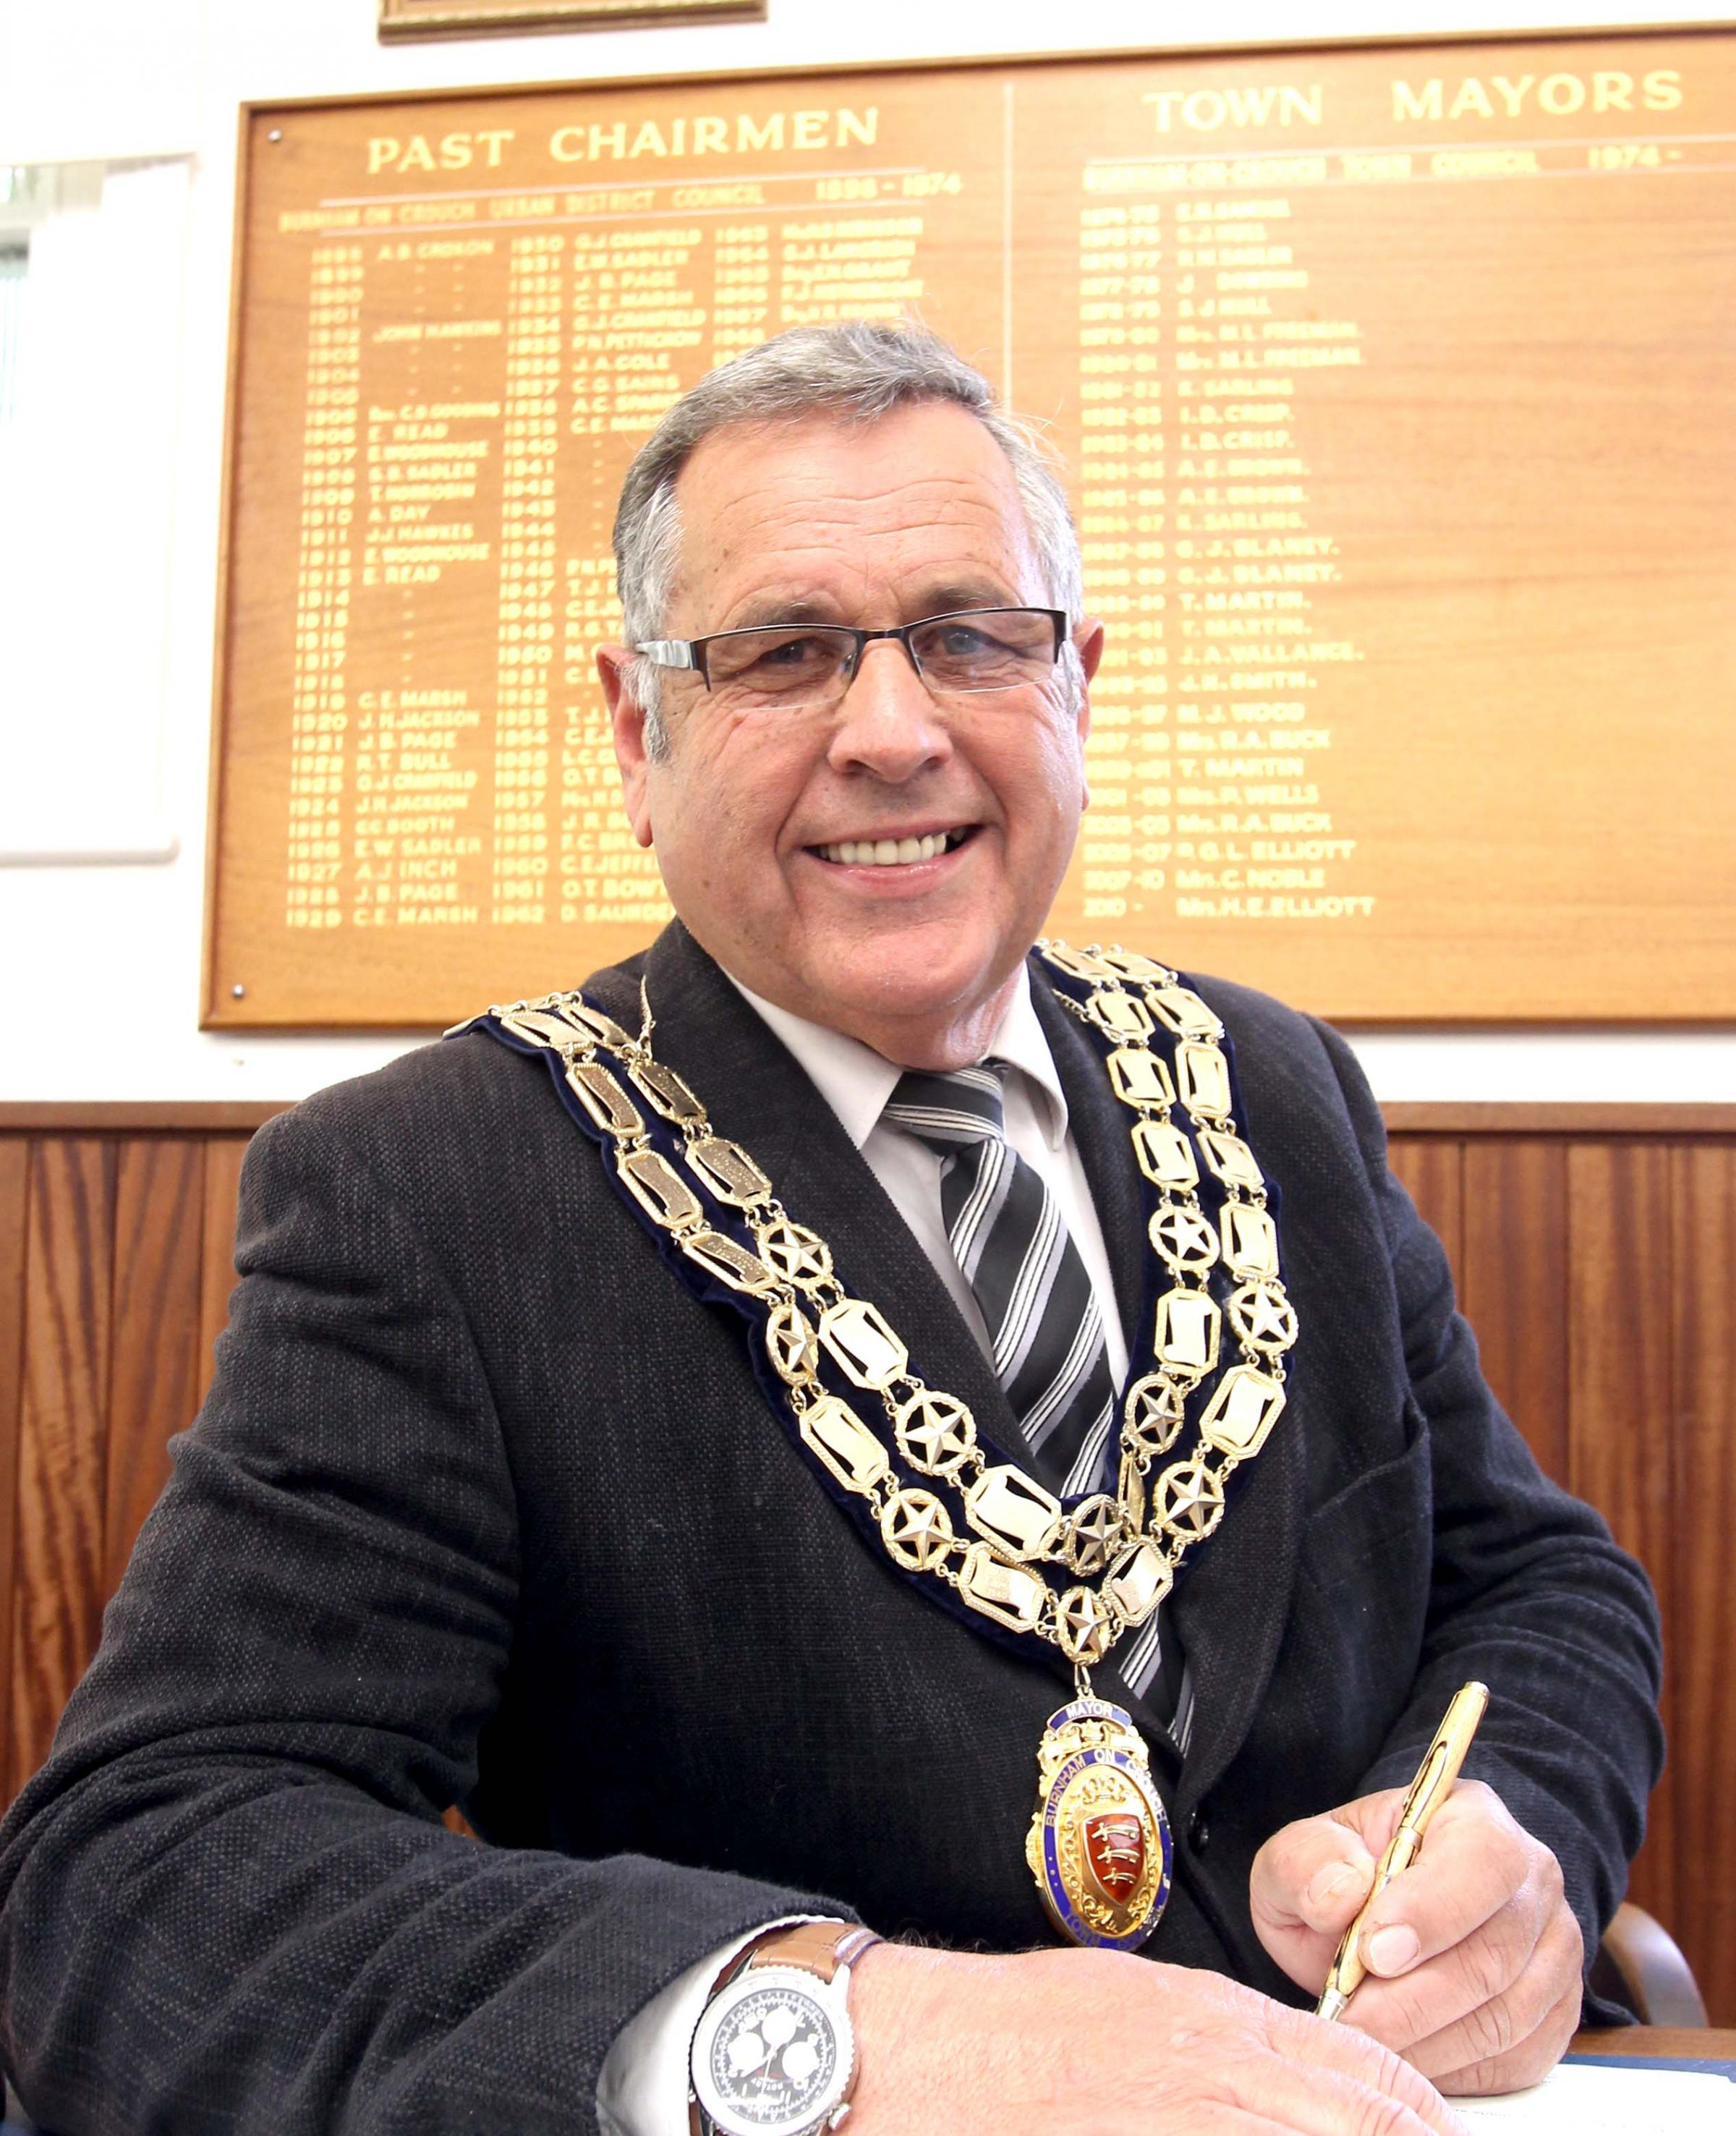 Burnham Mayor, Ron Pratt, thinks a barrister will be too costly